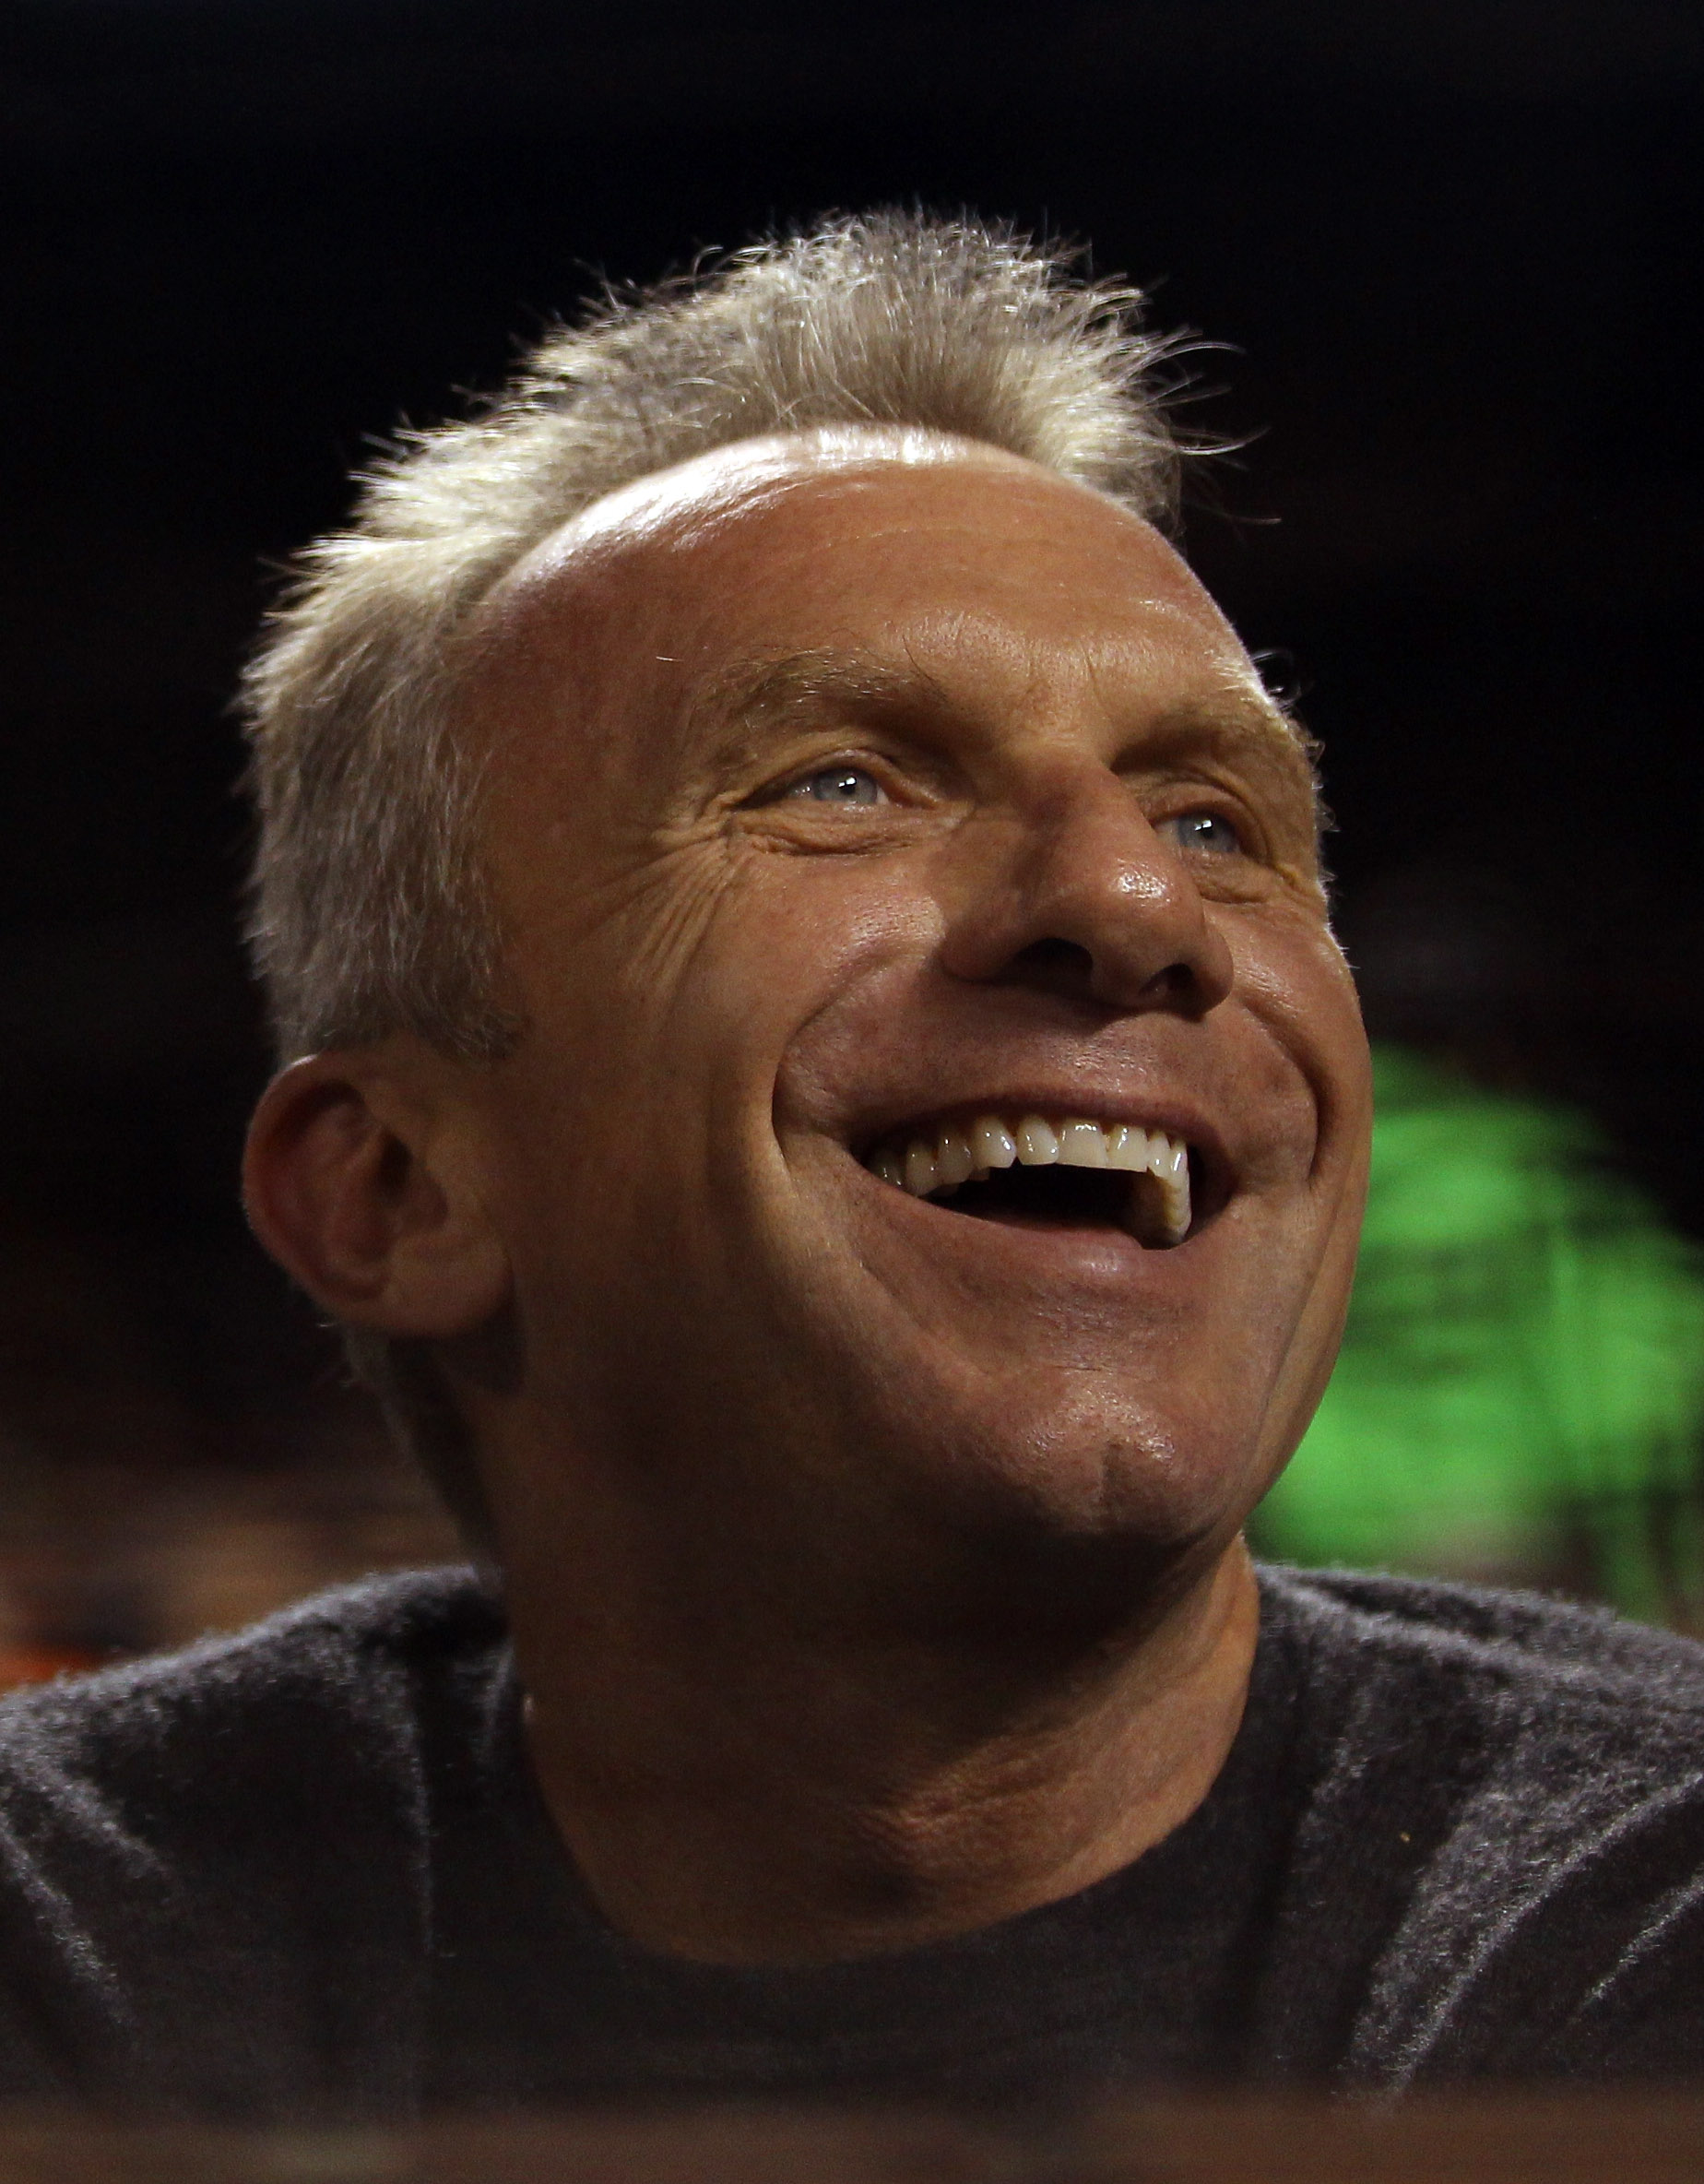 SAN FRANCISCO - SEPTEMBER 15:  Joe Montana watches the Los Angeles Dodgers play the San Francisco Giants at AT&T Park on September 15, 2010 in San Francisco, California.  (Photo by Ezra Shaw/Getty Images)